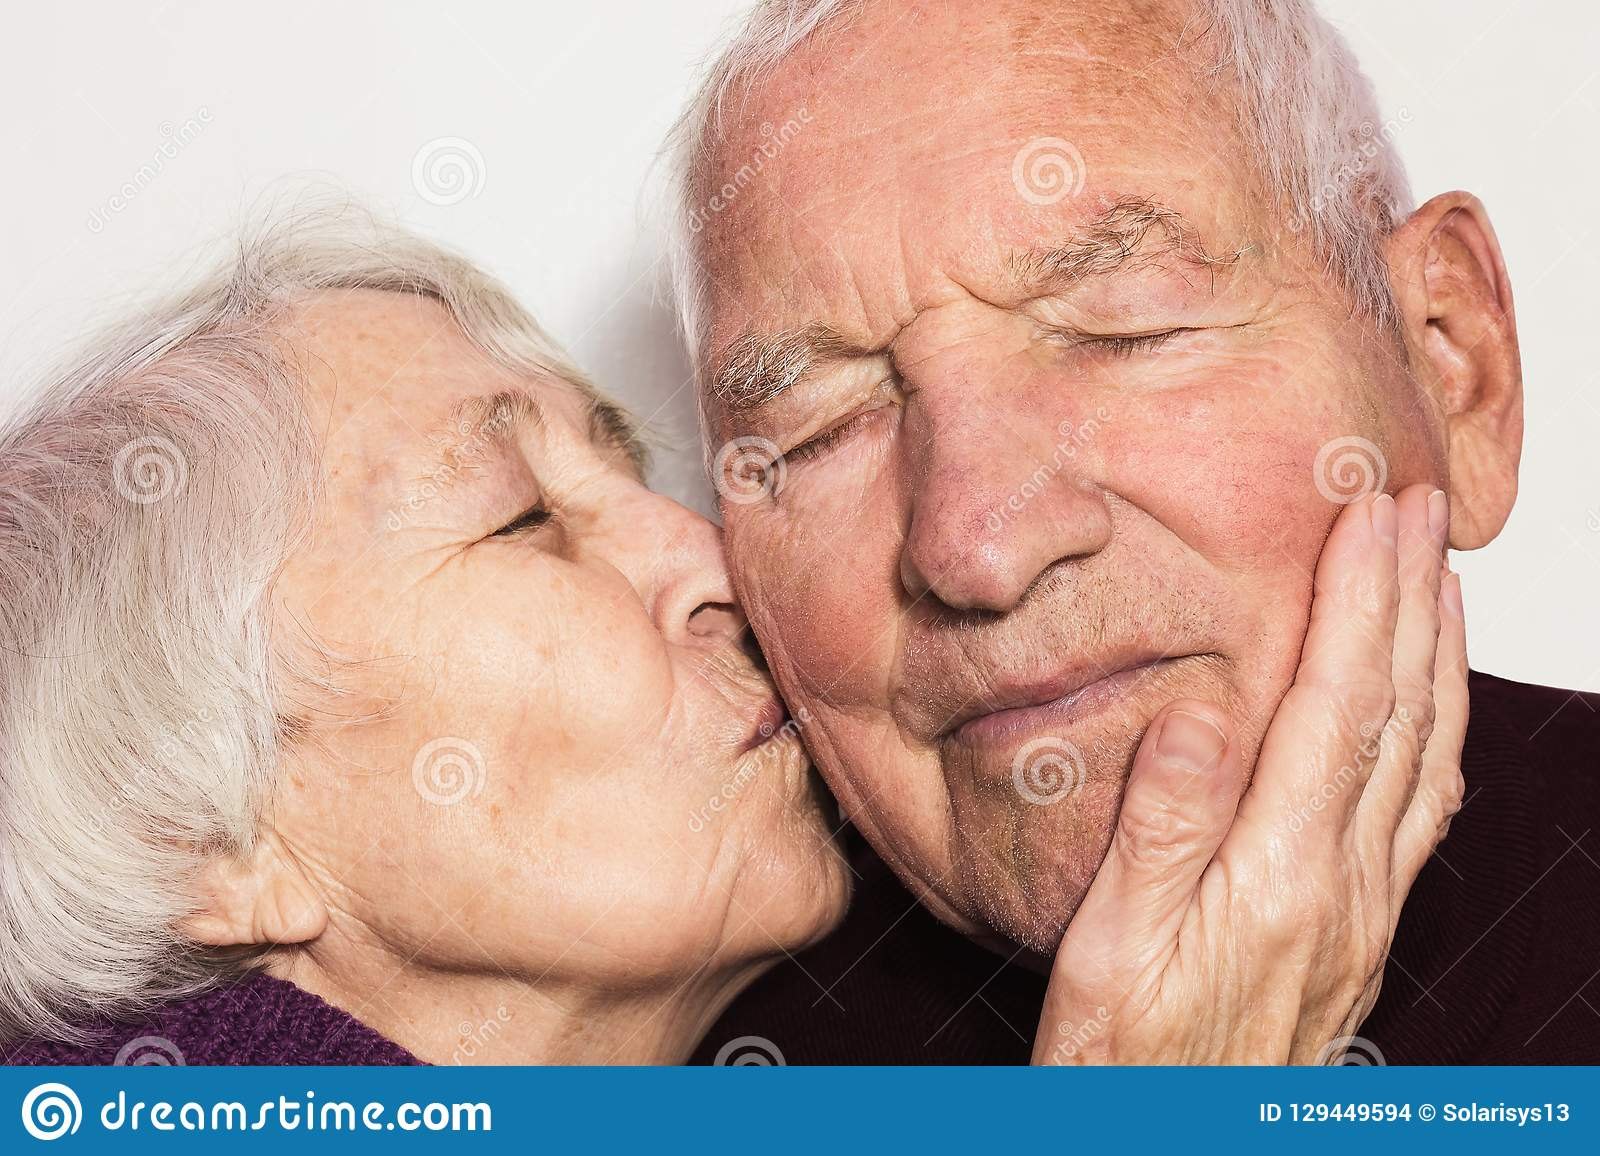 Loving and kissing an old man